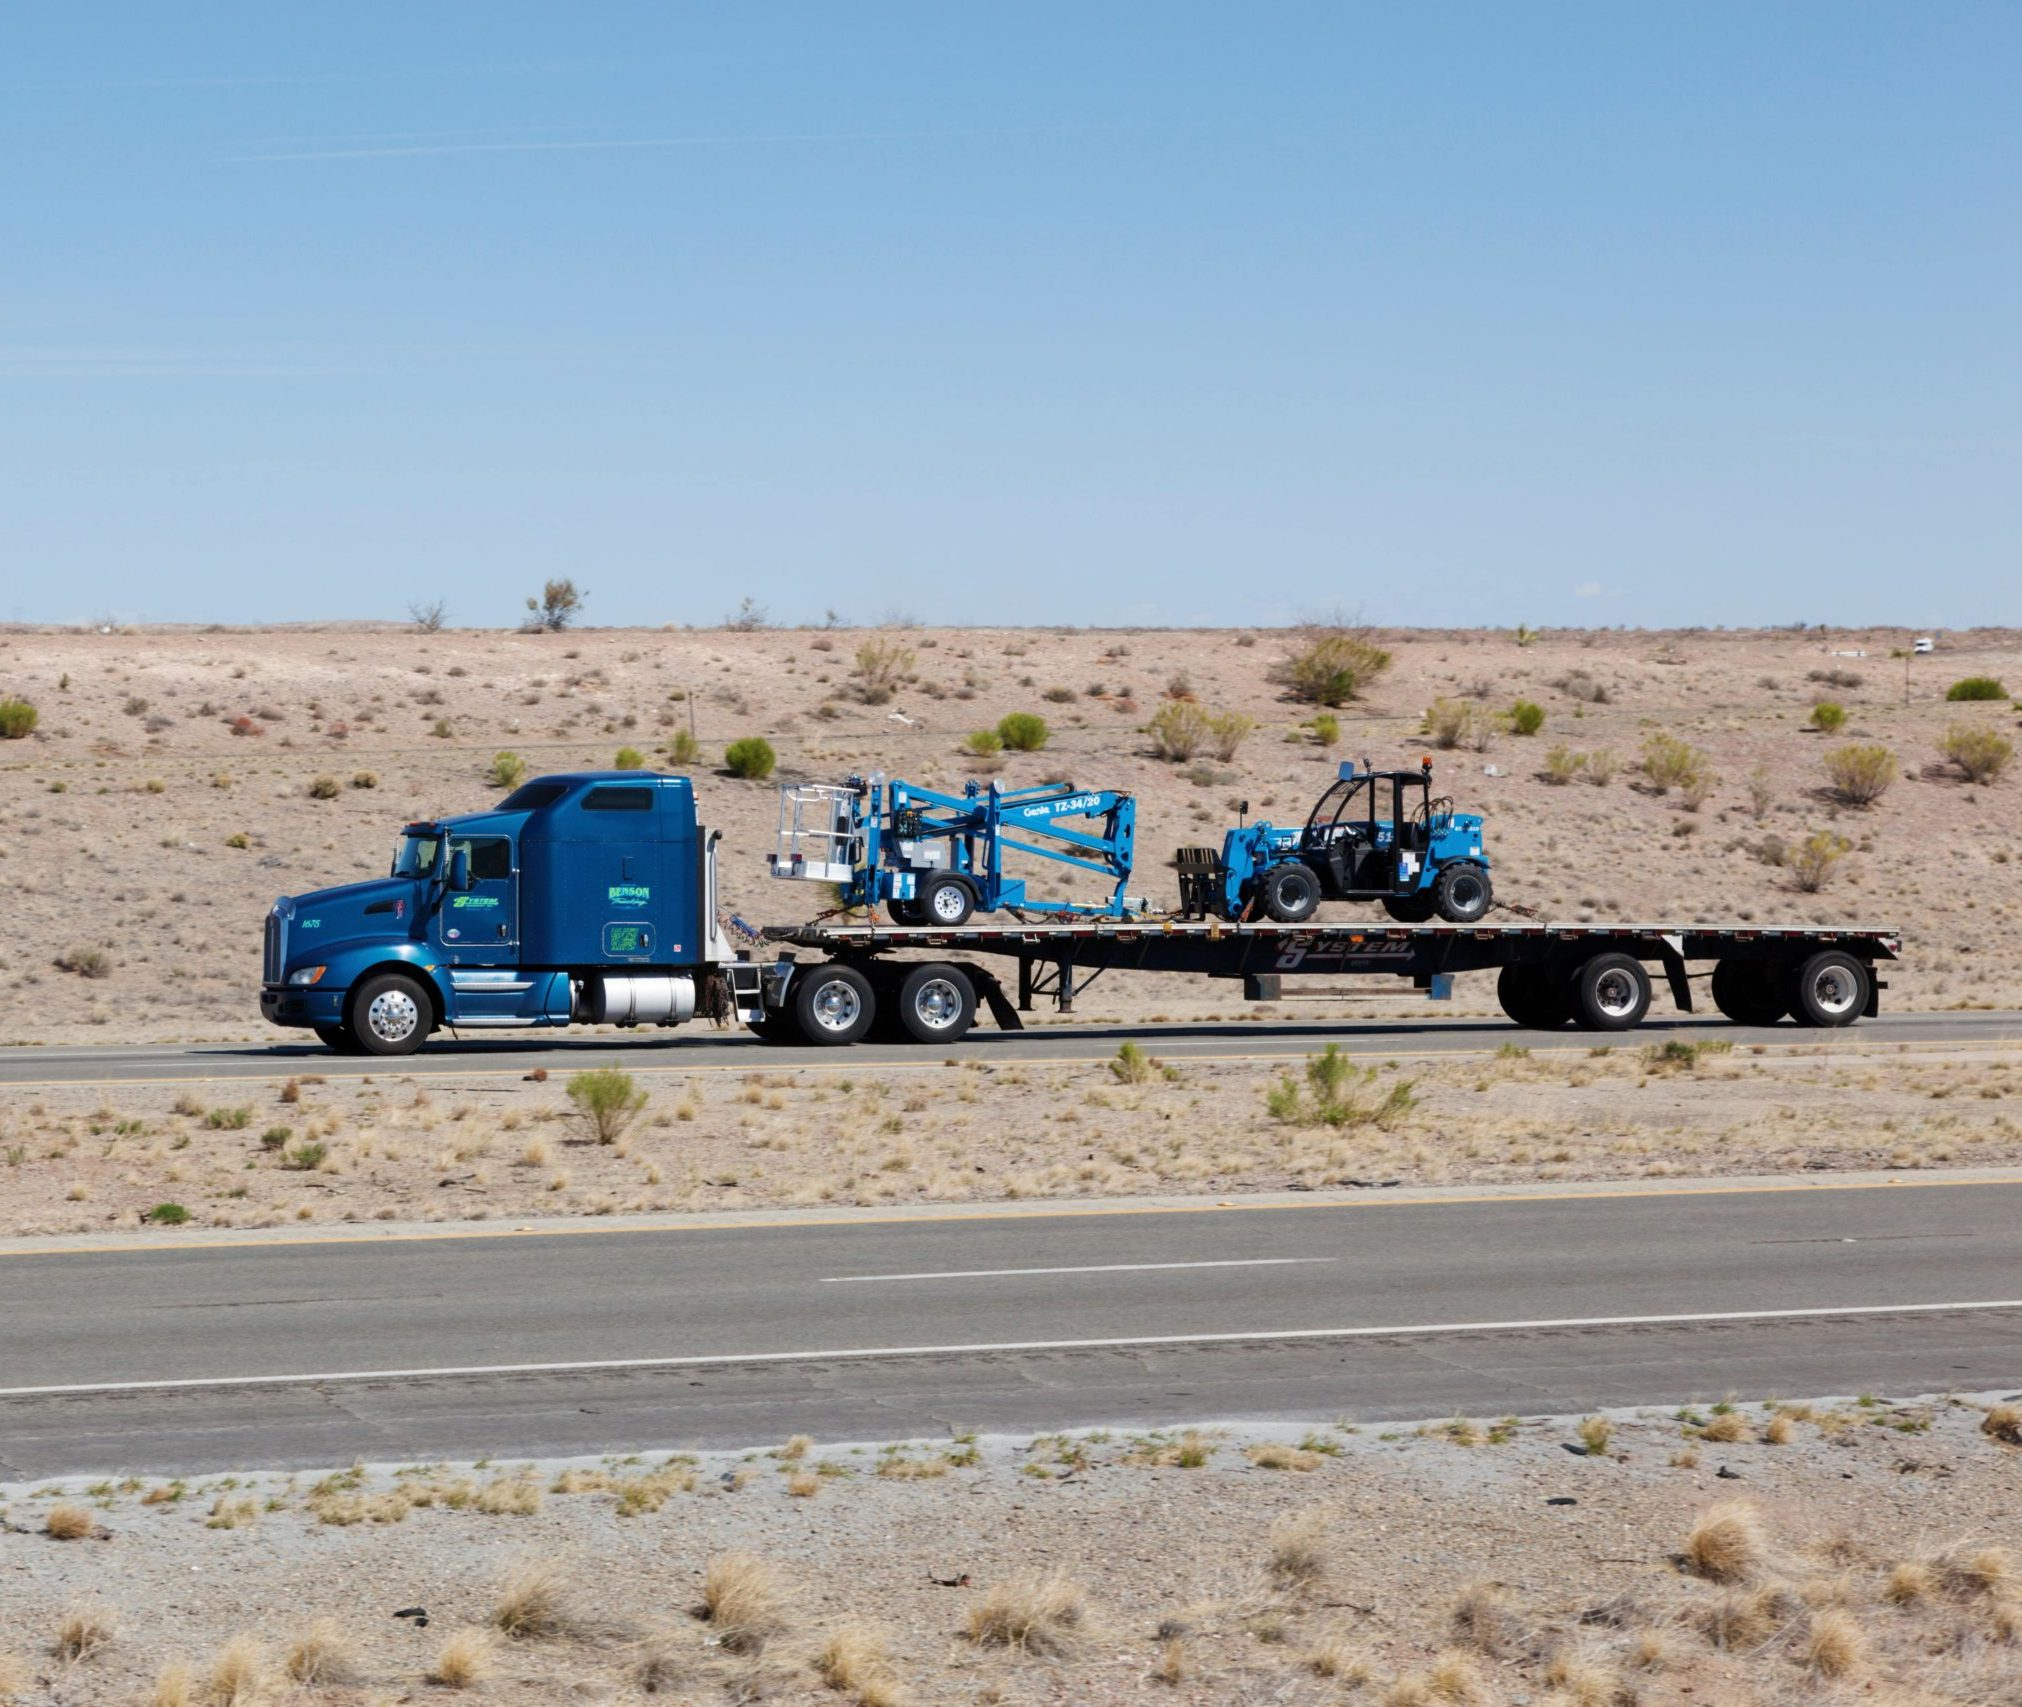 Truck hauling forklifts in transport